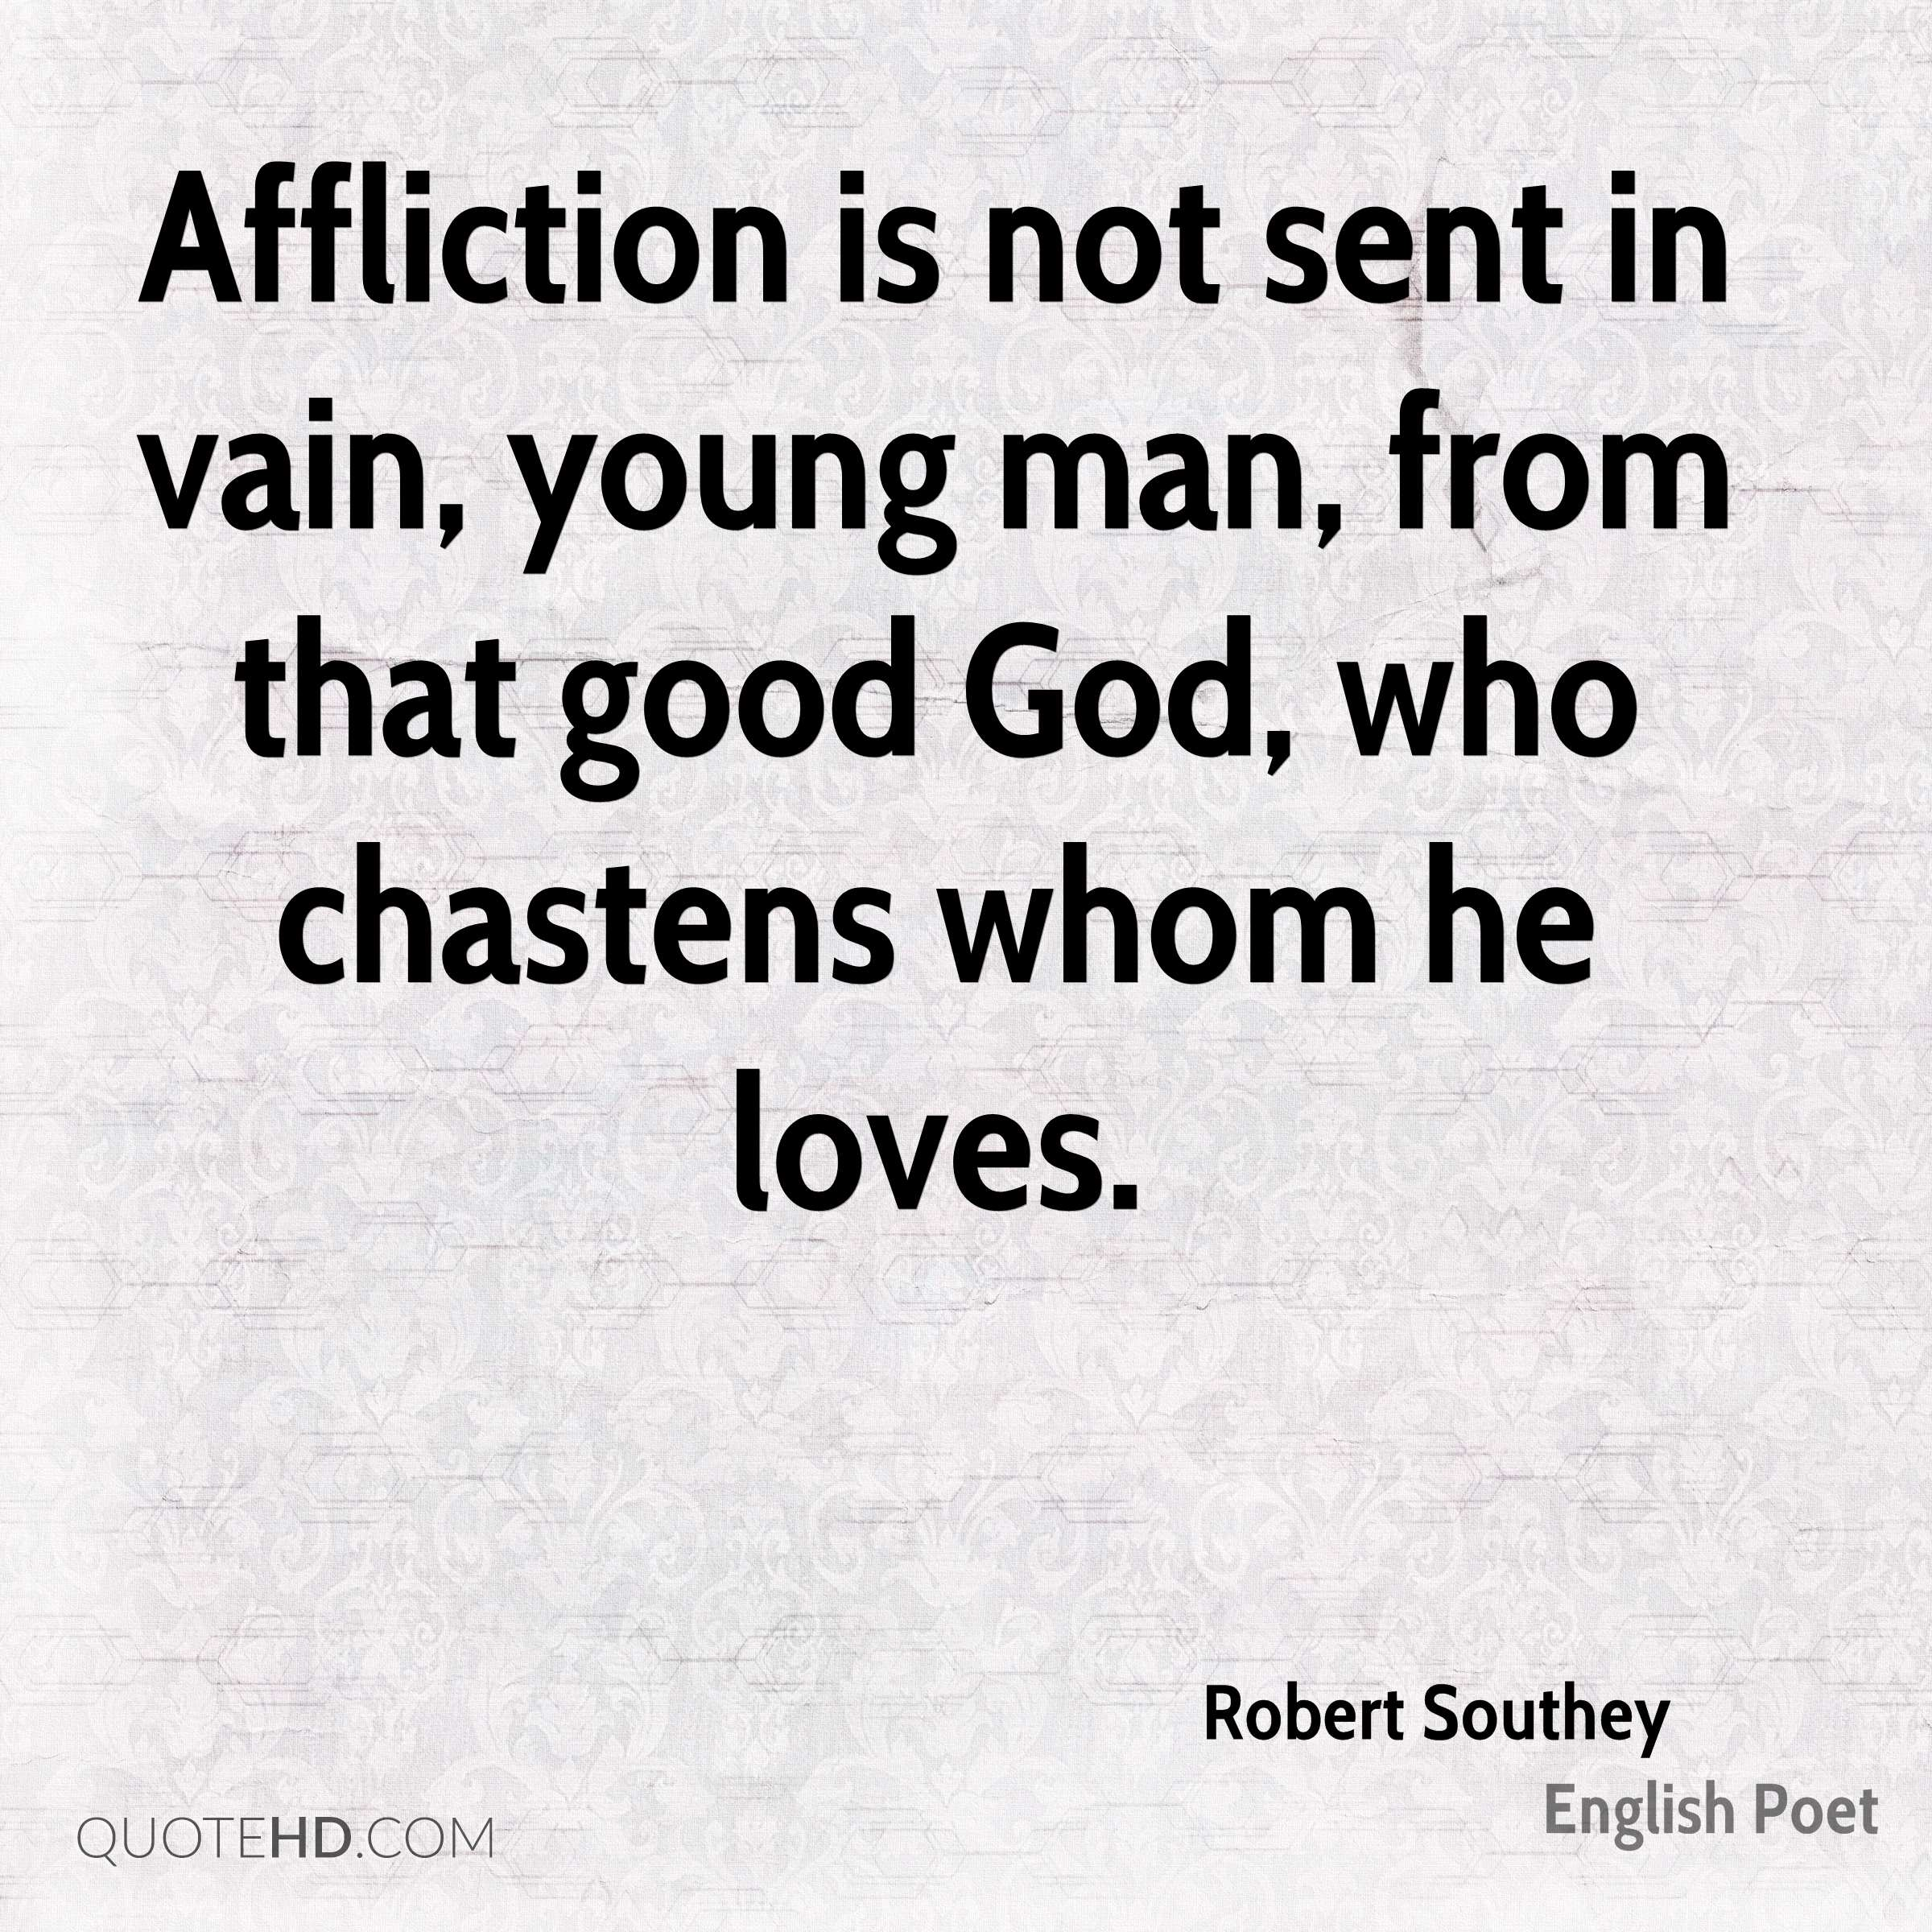 Affliction is not sent in vain, young man, from that good God, who chastens whom he loves.